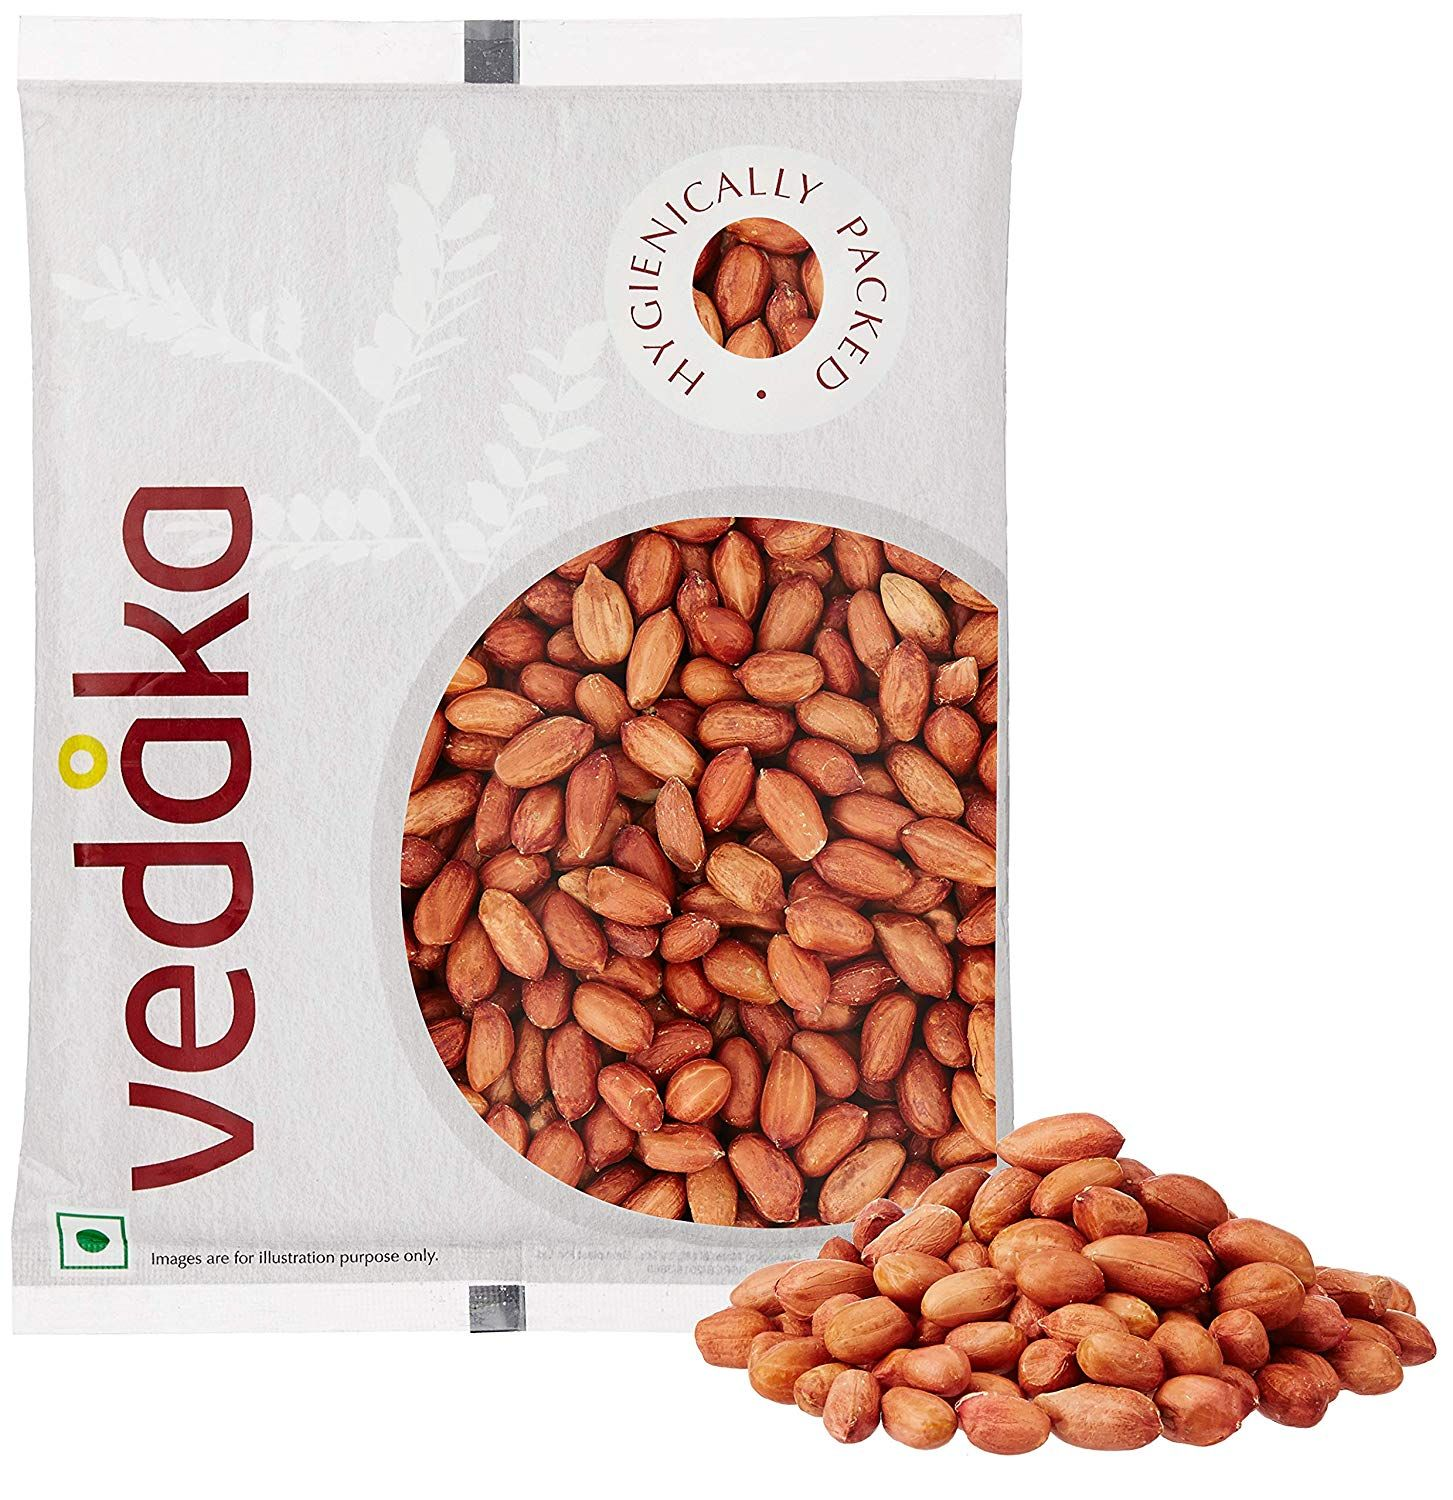 Amazon Brand - Vedaka Raw Peanuts, Red, 500g. at Just Rs. 59 !!